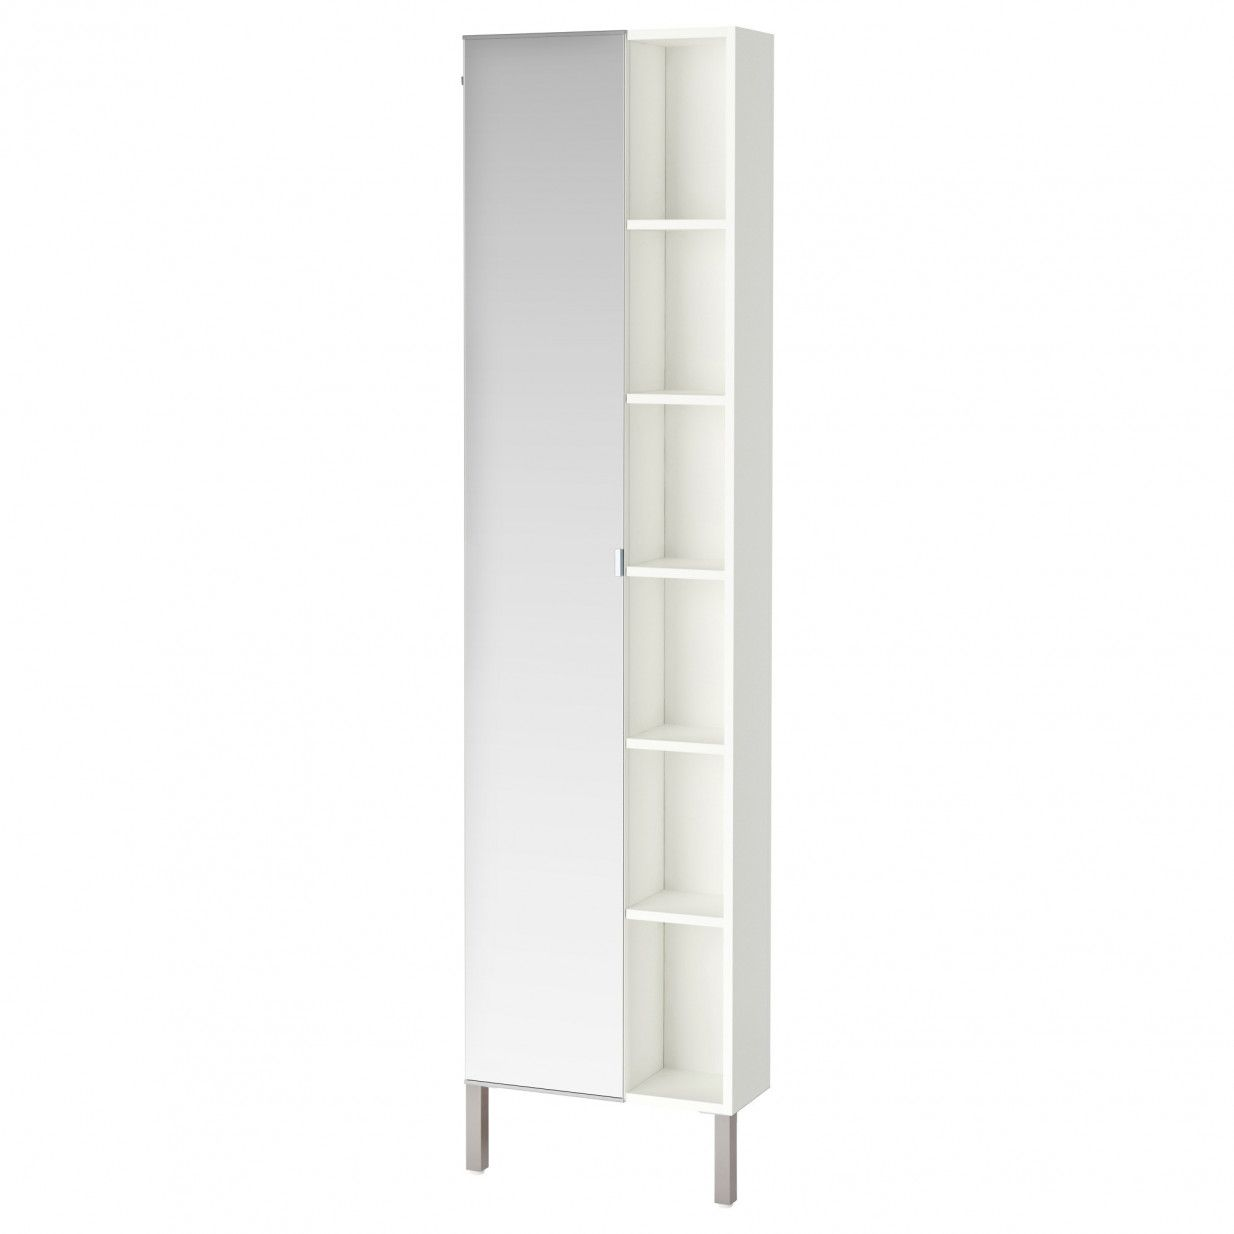 2018 Ikea Tall Bathroom Cabinet - Best Paint for Interior Walls ...